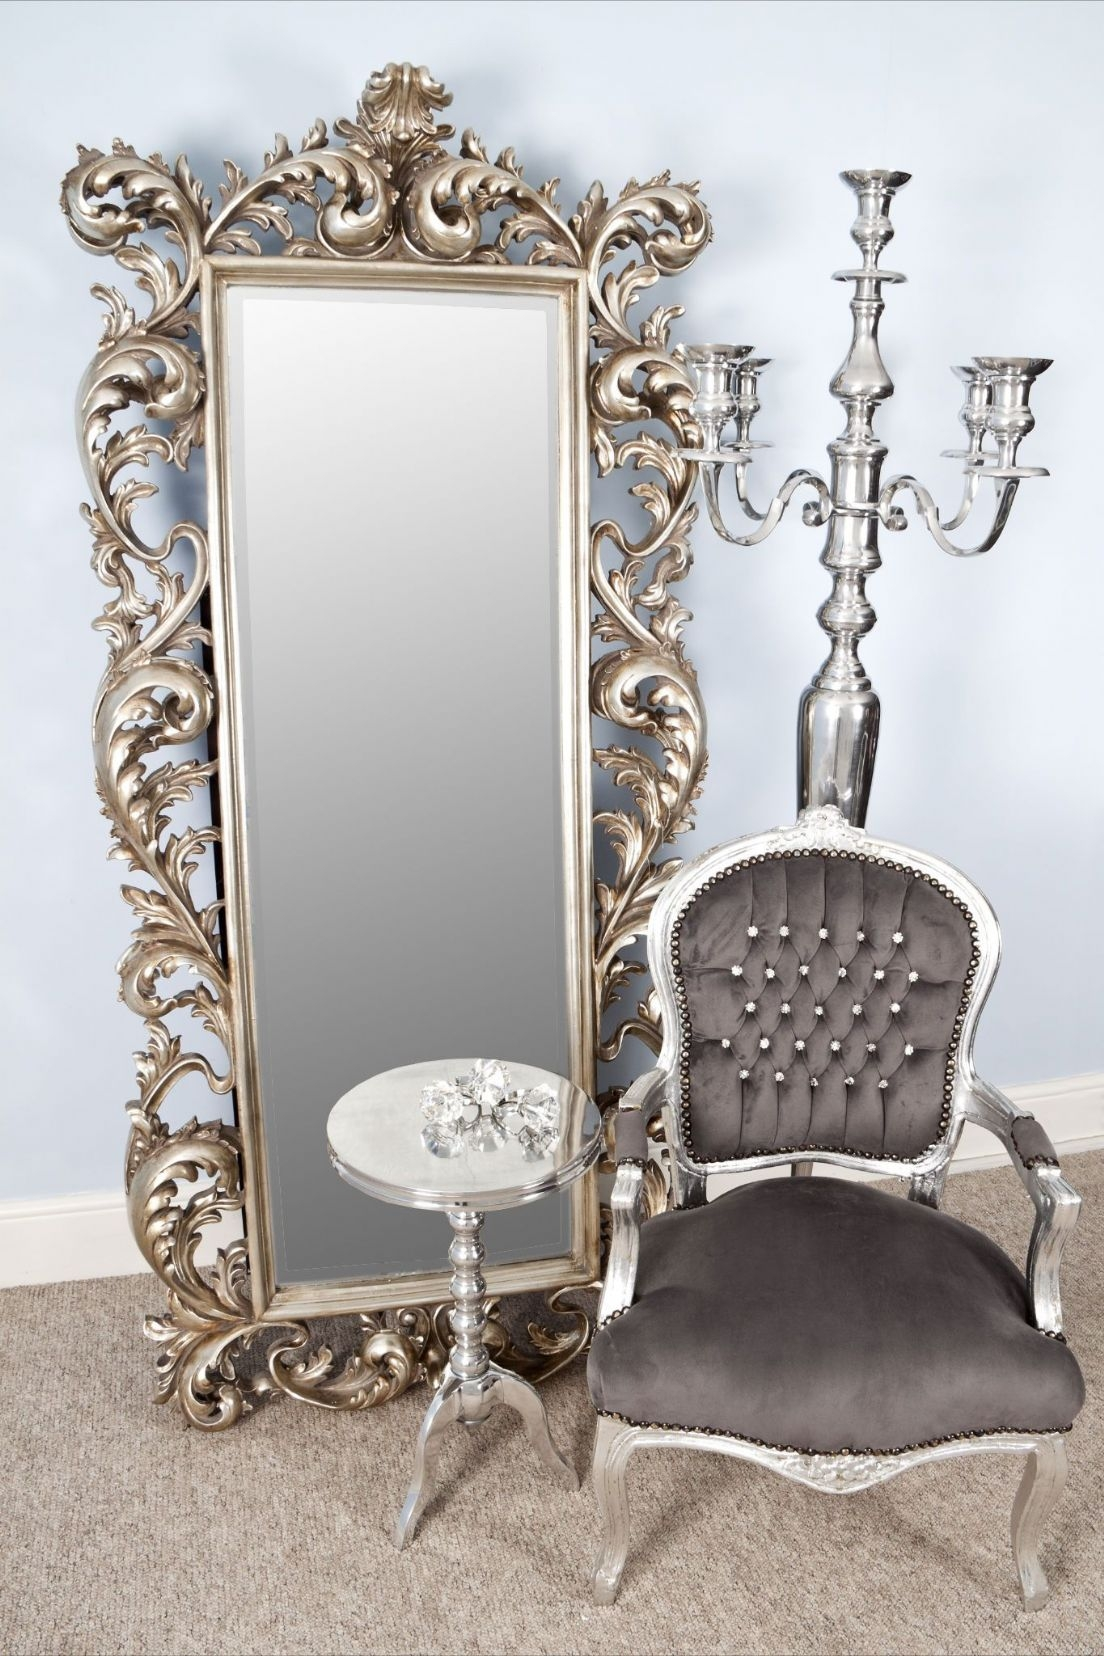 Bedroom Appealing Oversized Mirrors For Home Decoration Ideas Throughout Large Antique Mirrors For Sale (Image 4 of 15)